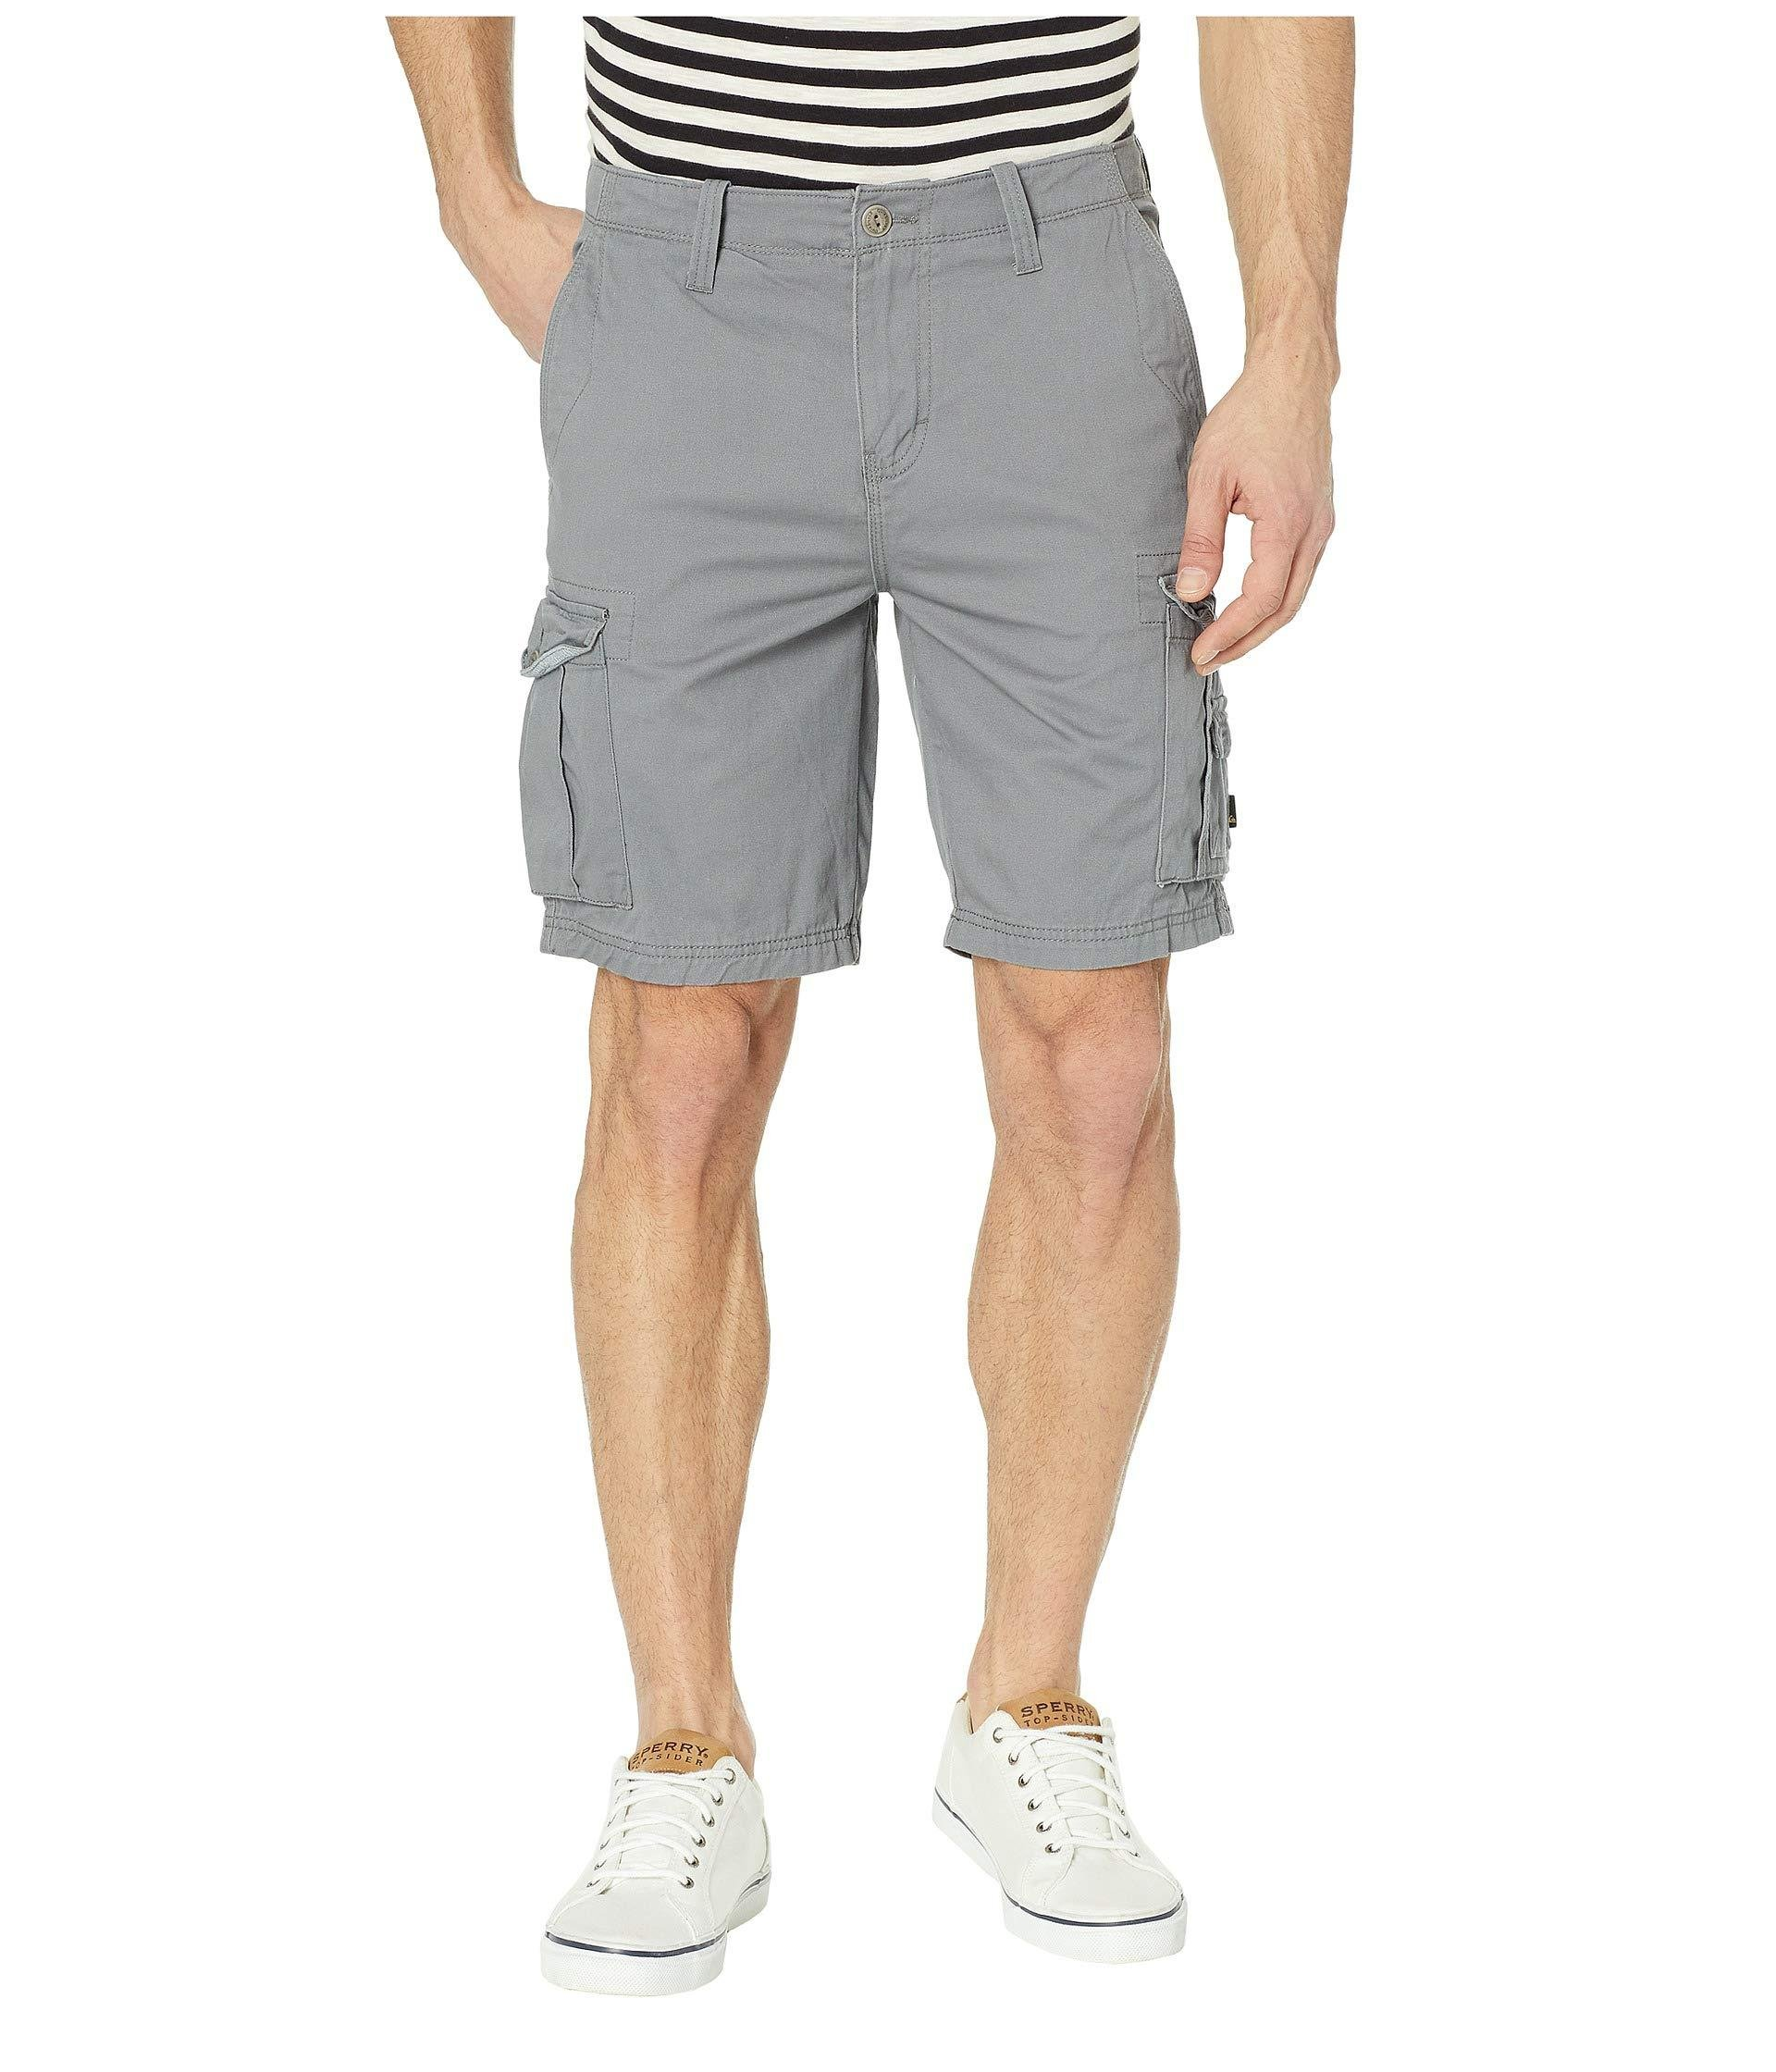 12ca02c7b7 Lyst - Quiksilver Crucial Battle Cargo Shorts in Gray for Men - Save 9%